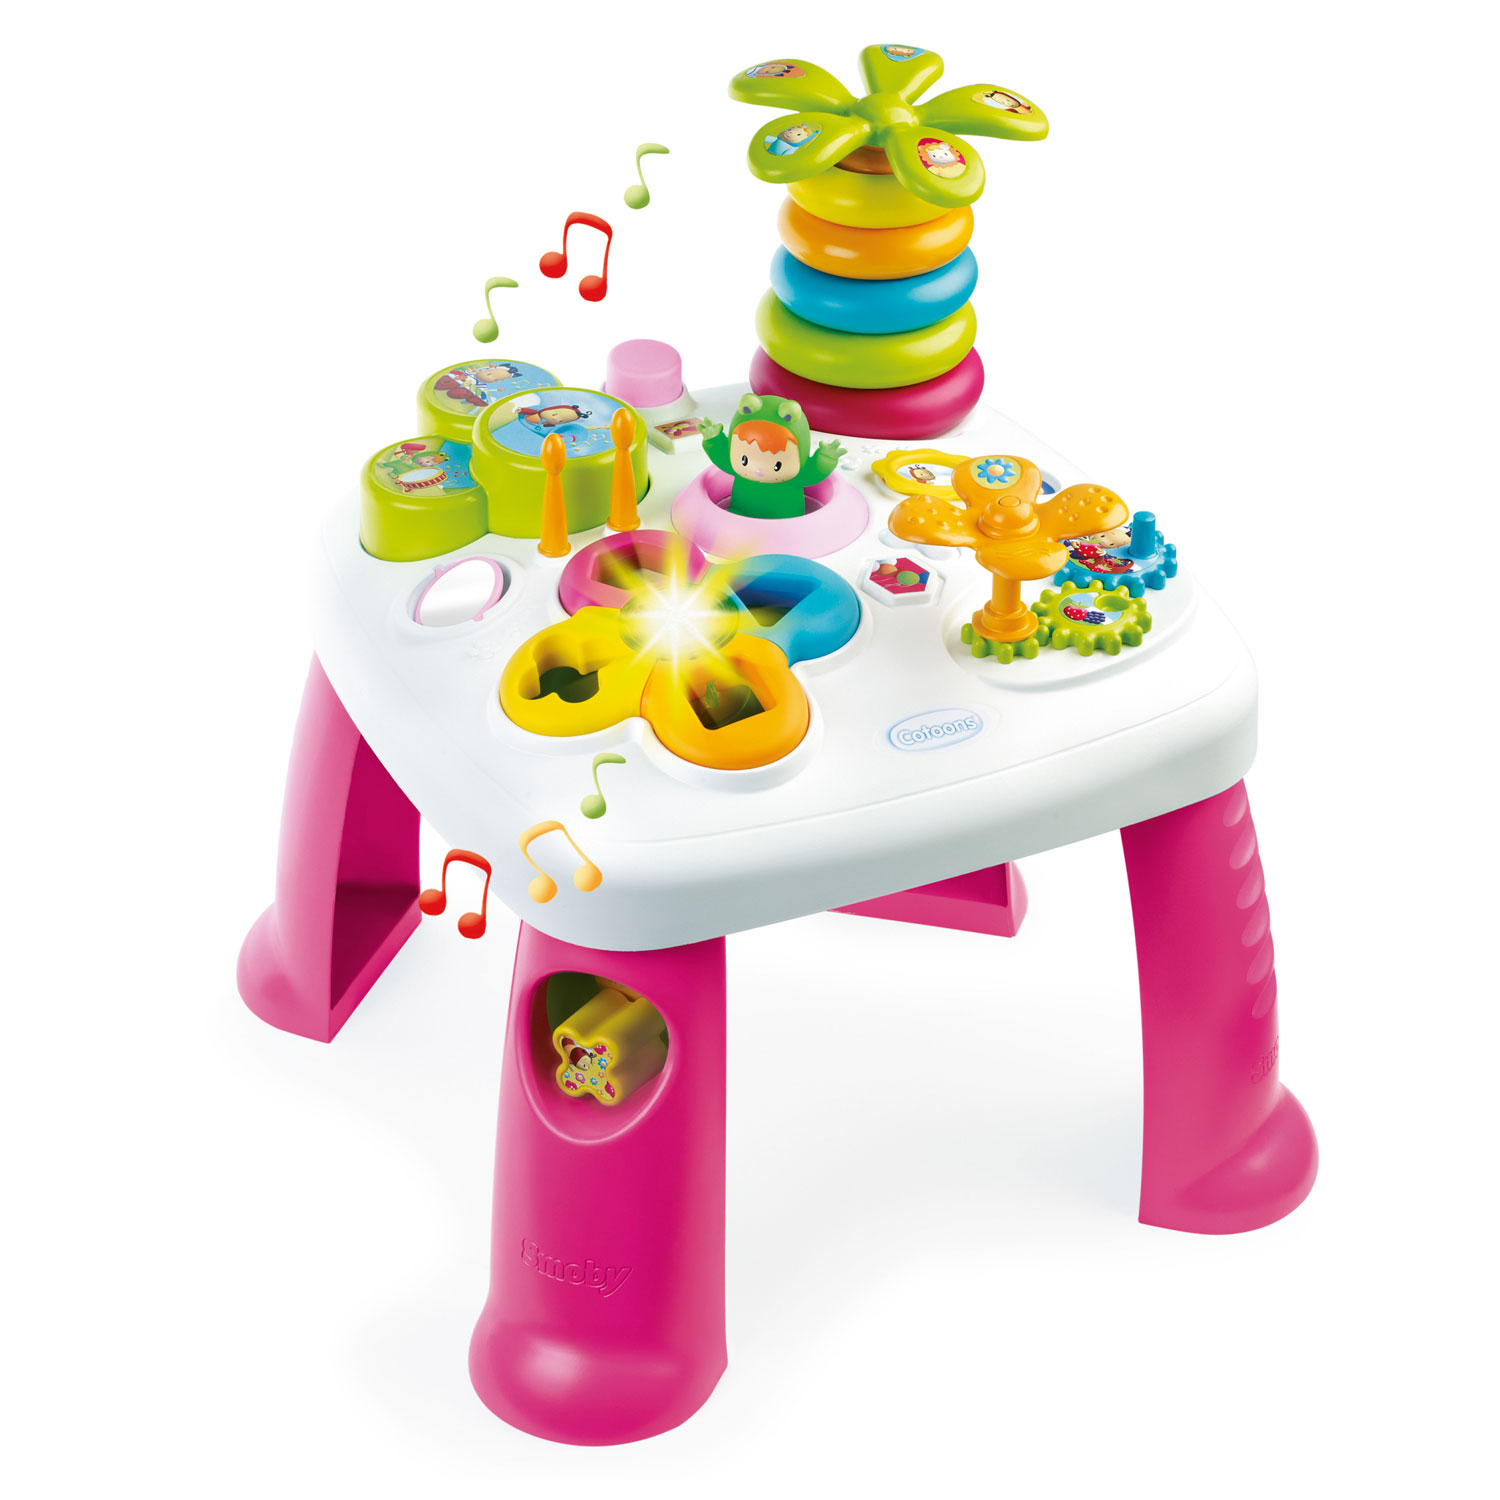 Smoby Cotoons Activiteitentafel - Roze